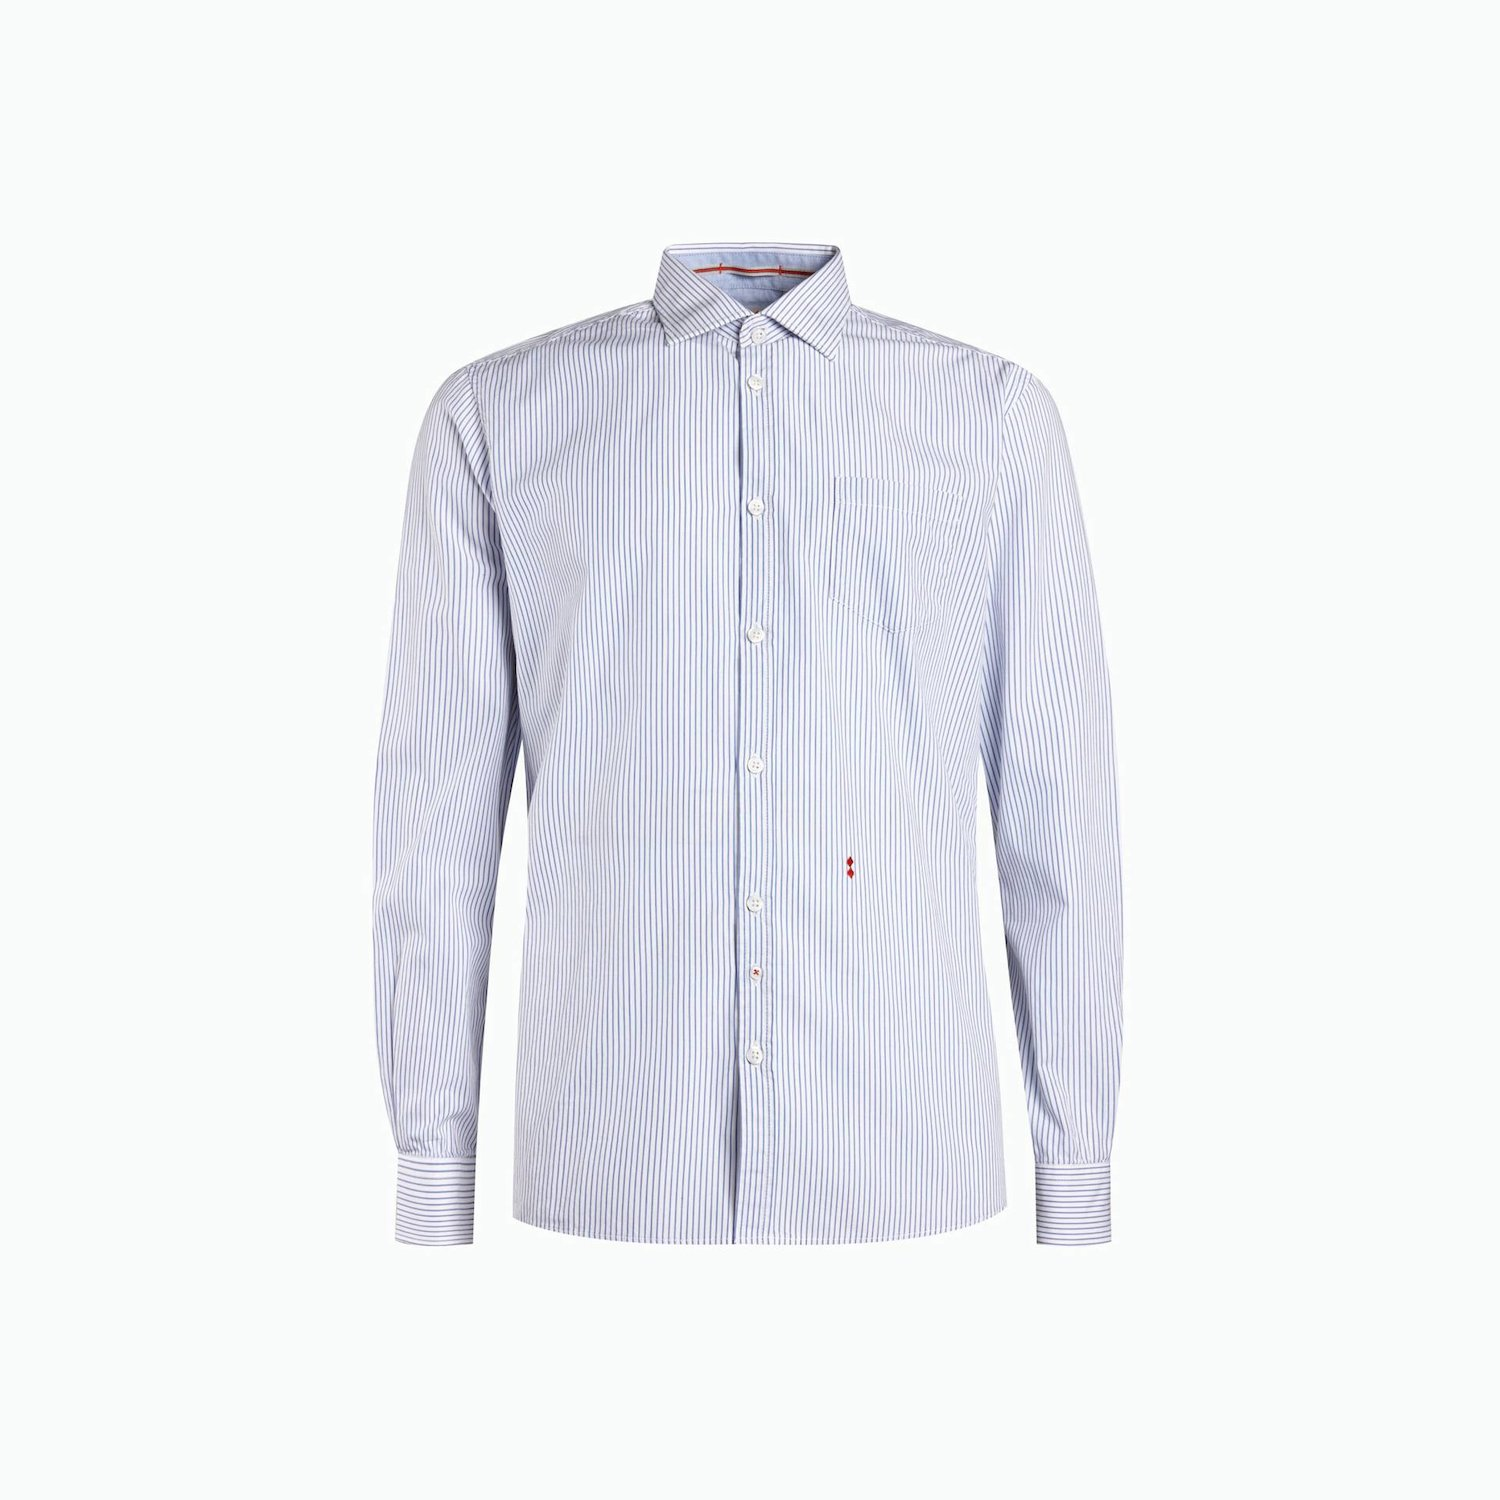 B13 shirt - White / Light Blue